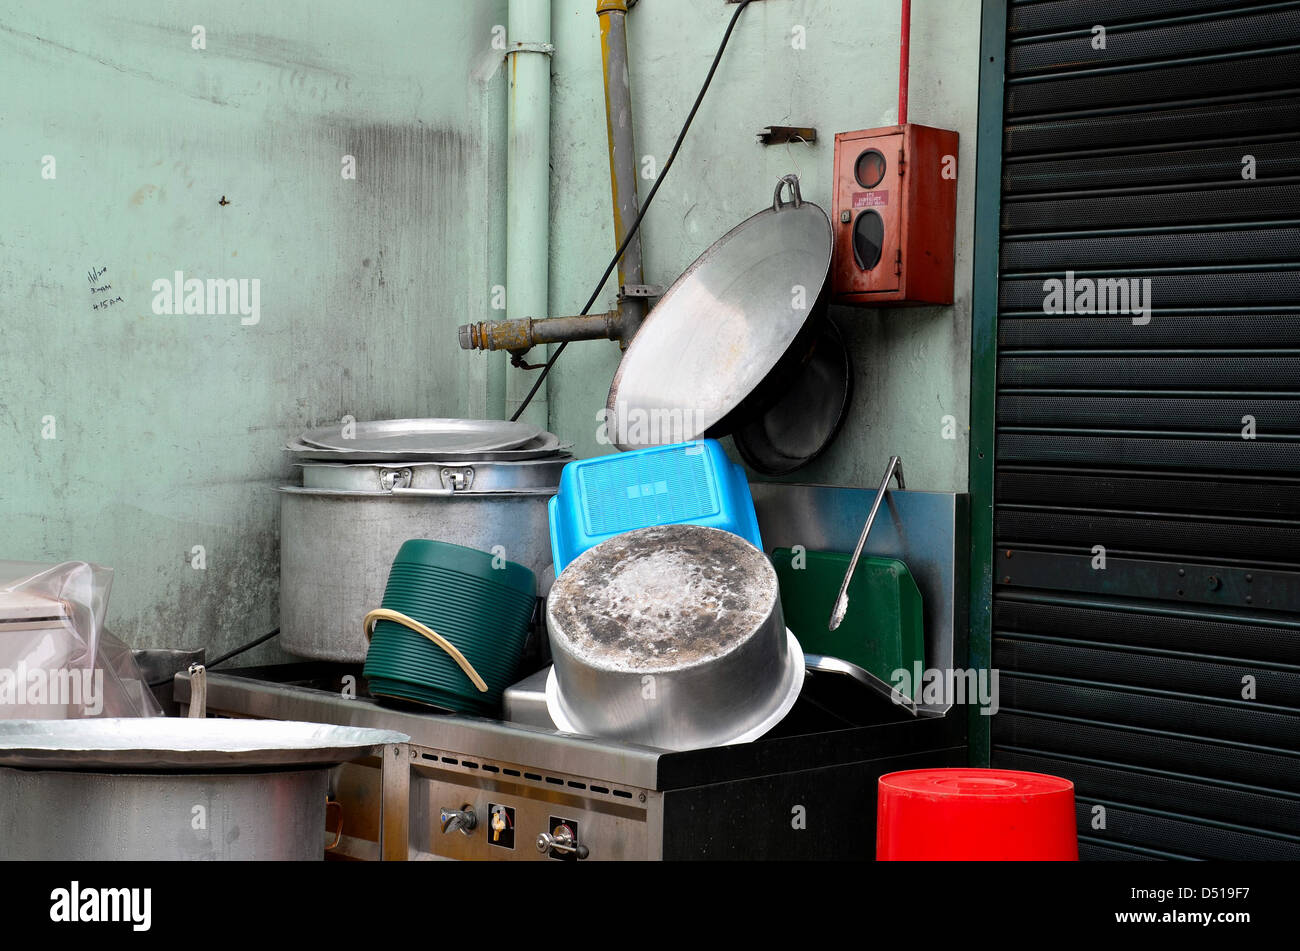 Clean pots and pans on outdoor sink - Stock Image